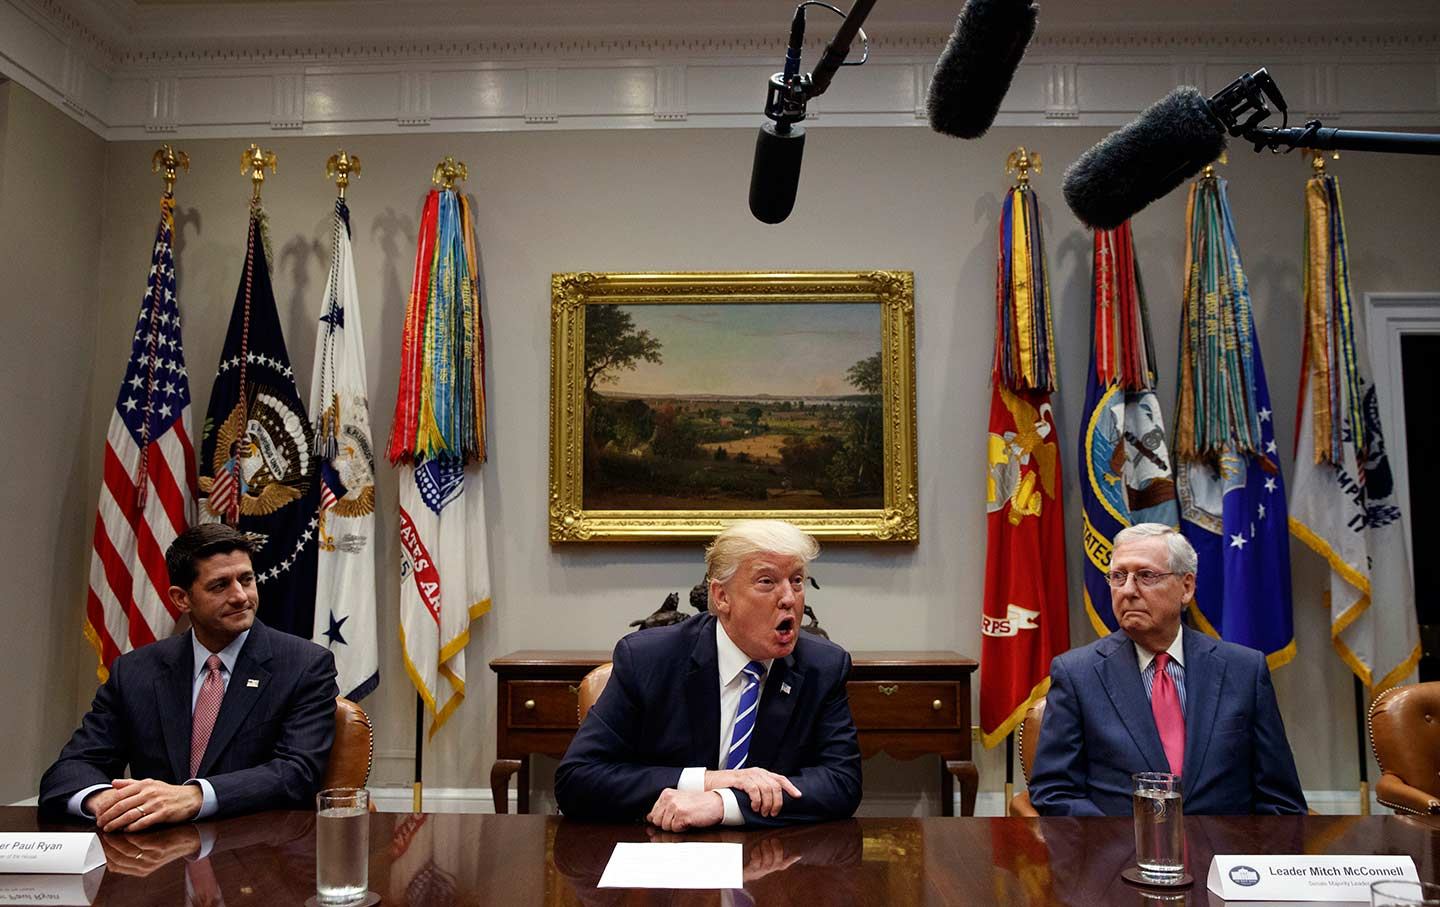 House Speaker Paul Ryan, left, and Senate Majority Leader Mitch McConnell, right, listen as Donald Trump speaks during a meeting on tax reform in the White House on September 5, 2017.